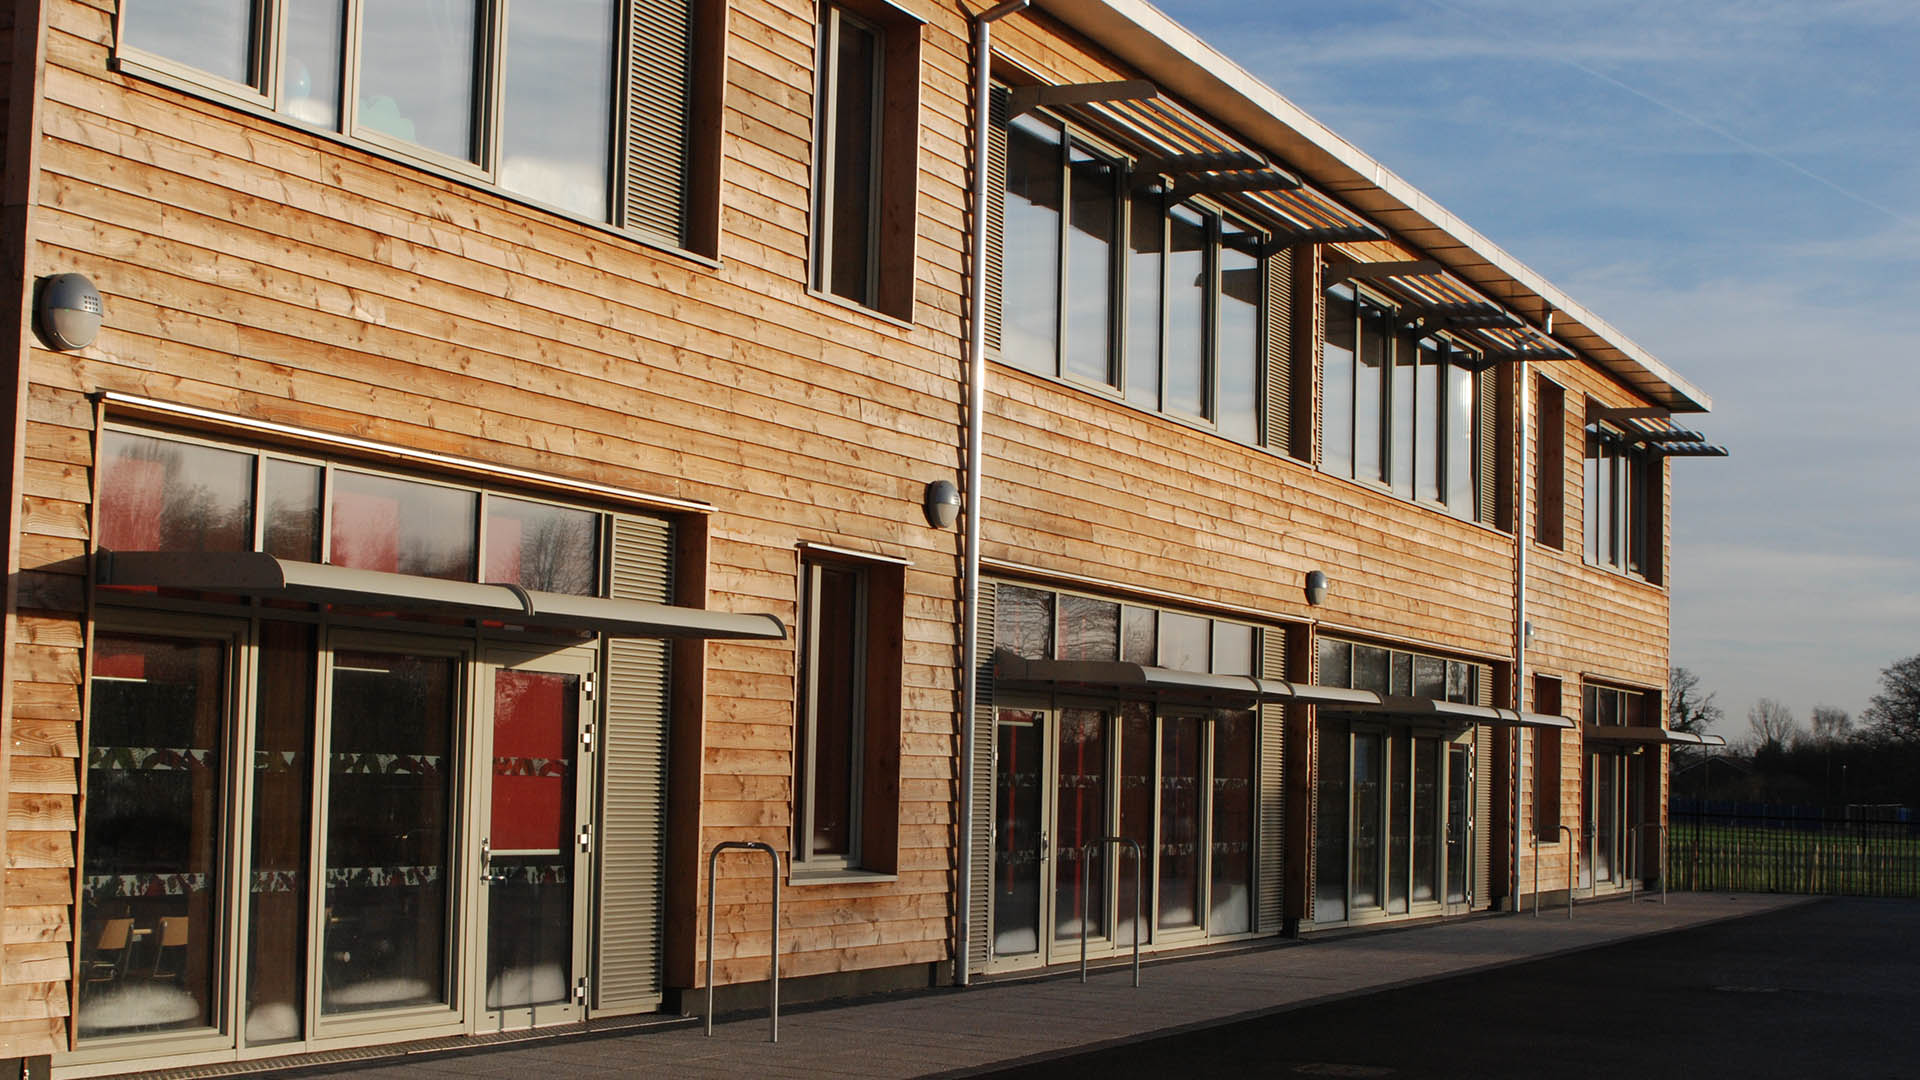 Oak Meadow Primary School - Passivhaus Trust - Non domestic - Shortlisted 2012Architect - Architype